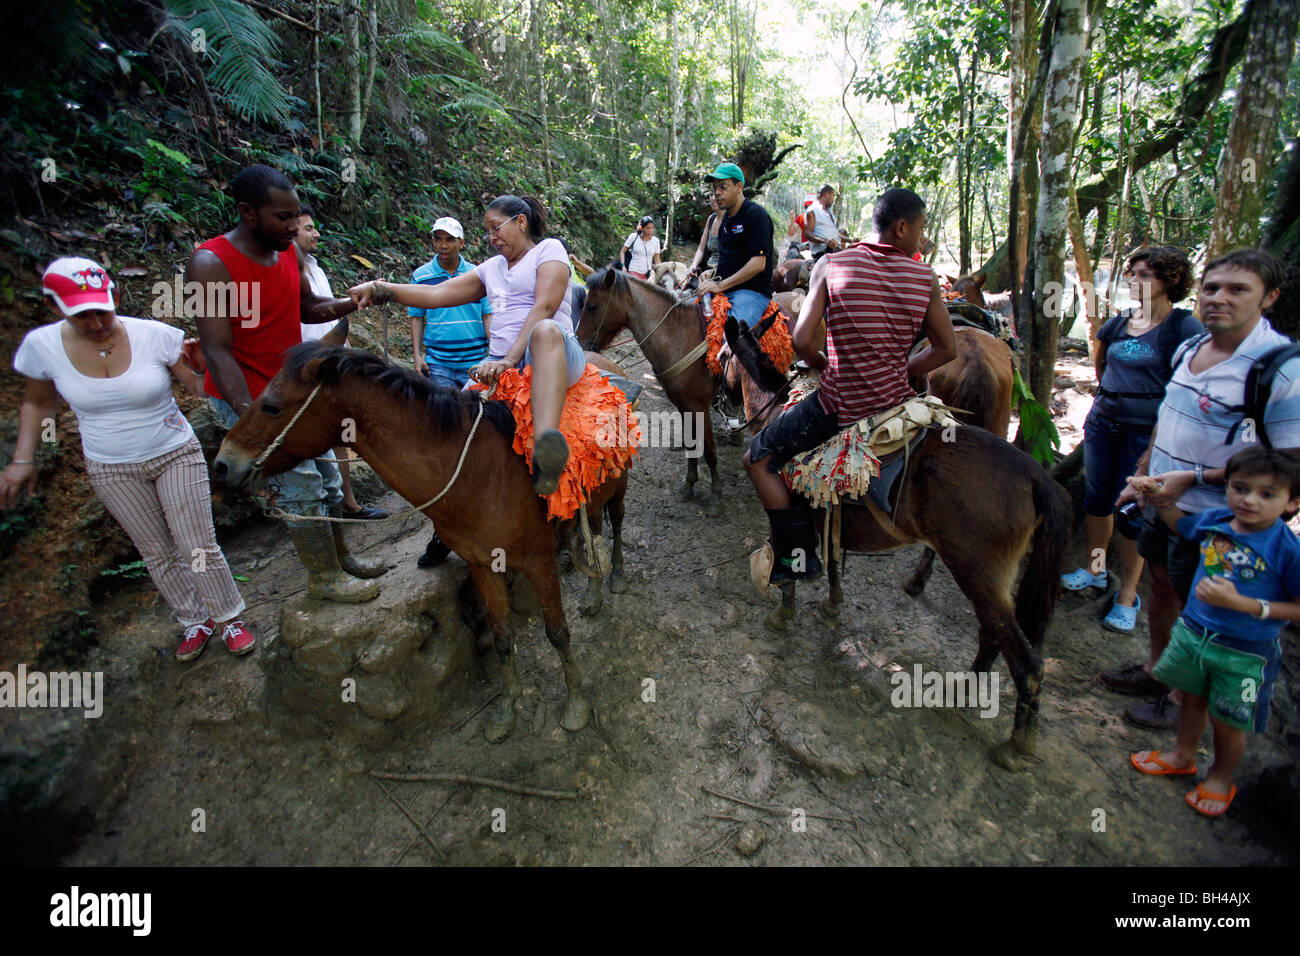 Guided horse tours to El Limon waterfall, Samana peninsula, Dominican Republic - Stock Image